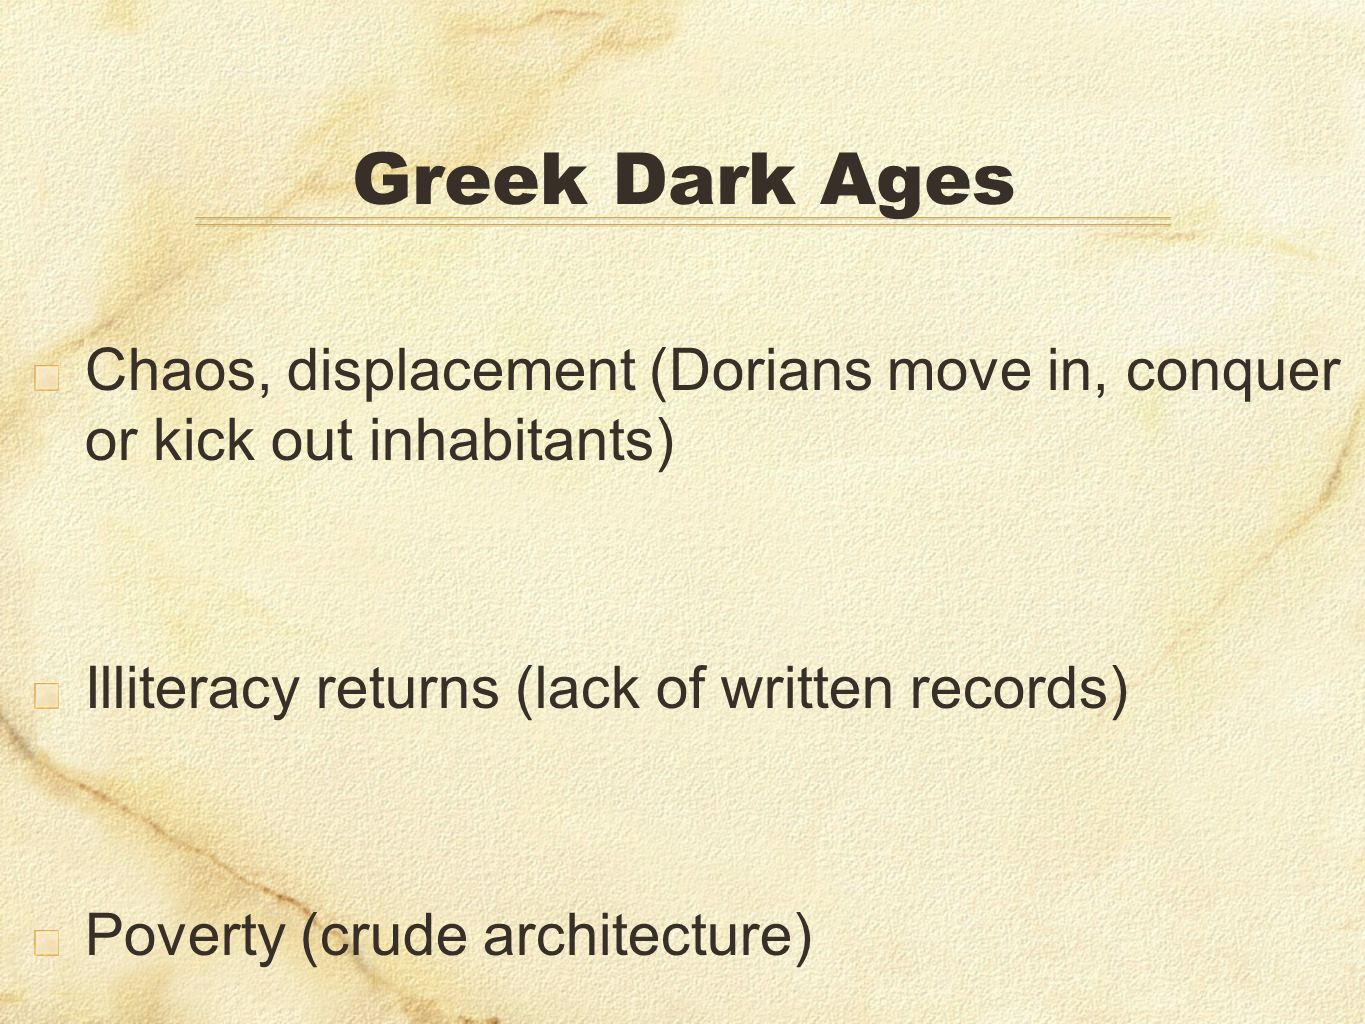 Greek Dark AgesChaos, displacement (Dorians move in, conquer or kick out inhabitants) Illiteracy returns (lack of written records)